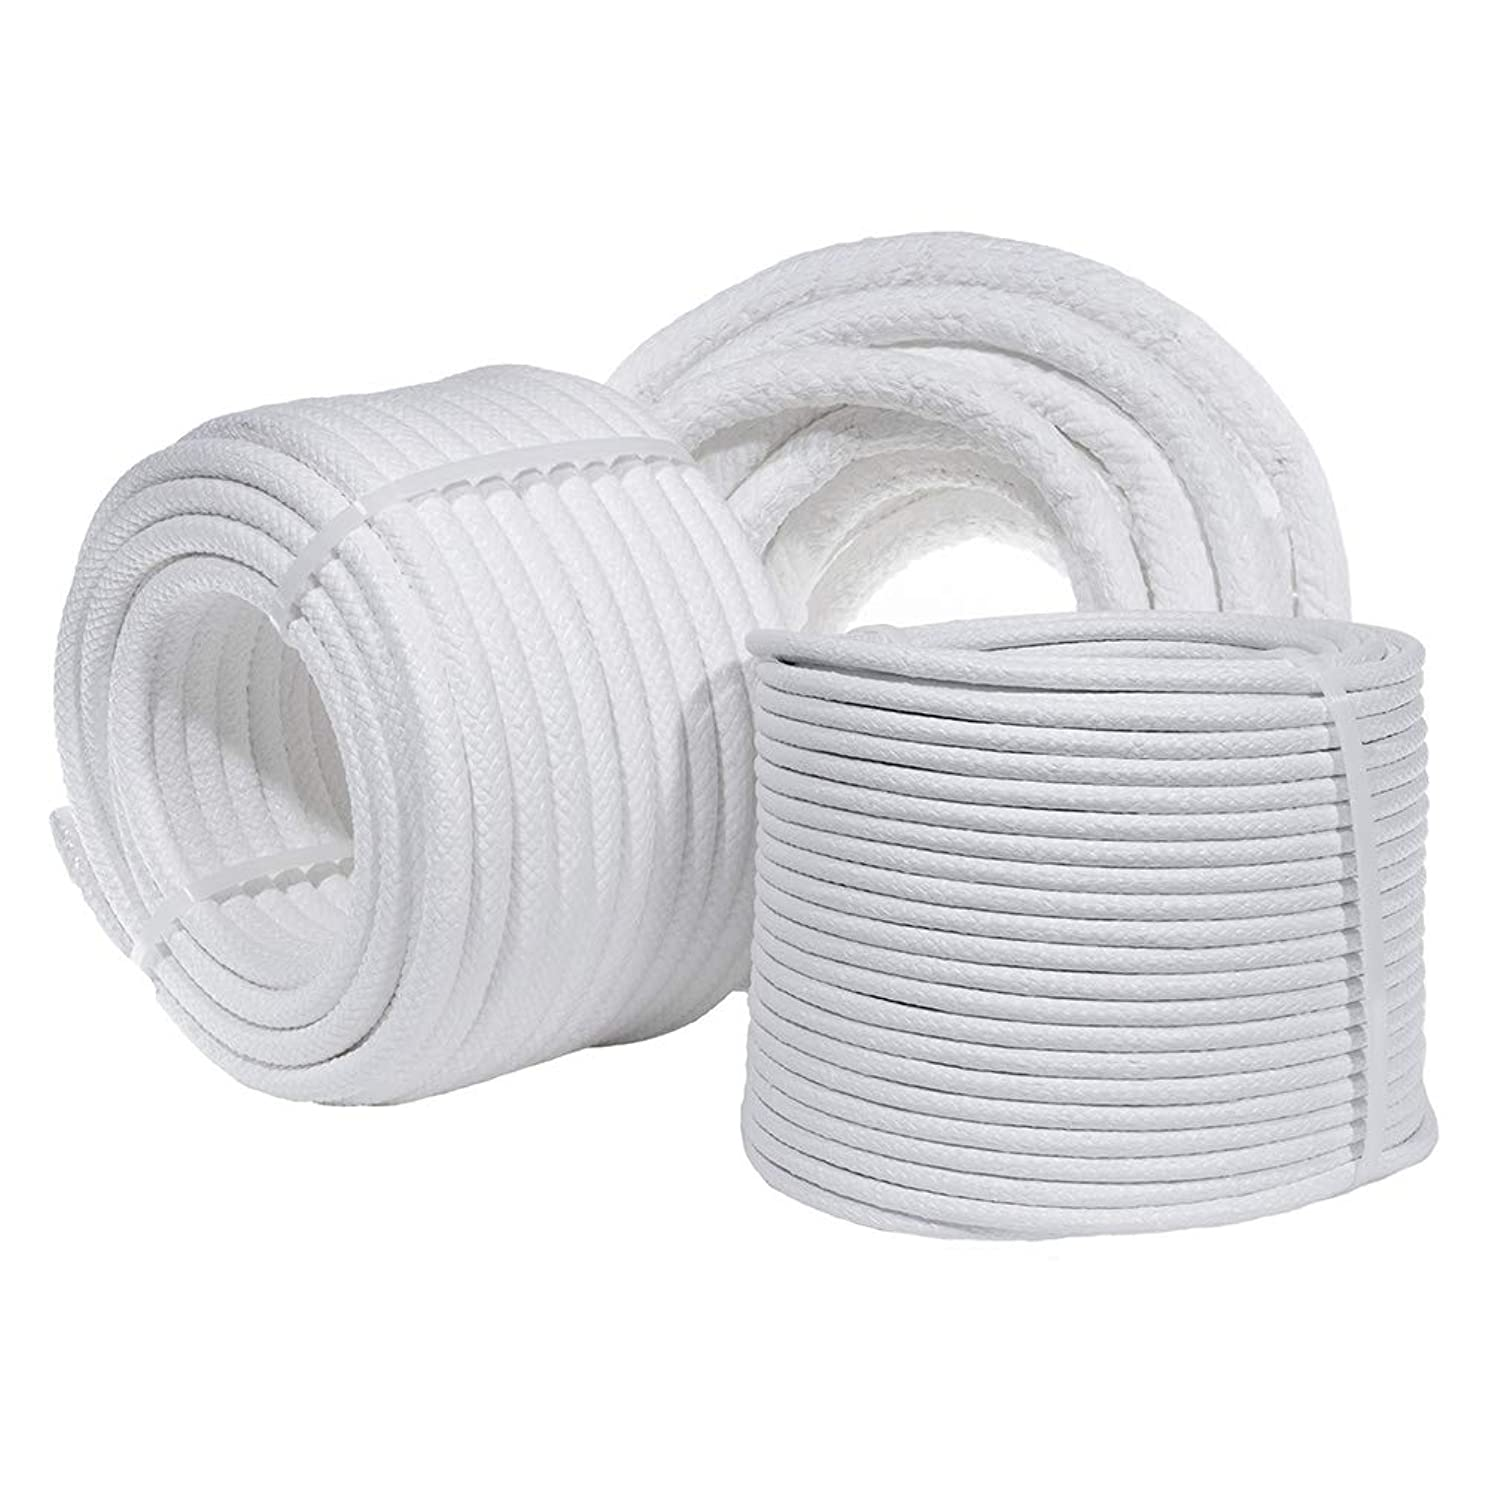 "Coiling Cord with Multiple Size and Length Variations - 3/4"", 1/2"" and 1/4"" in Either 30, 50, 100, or 180ft in Length Options - Perfect for Basket Weaving"